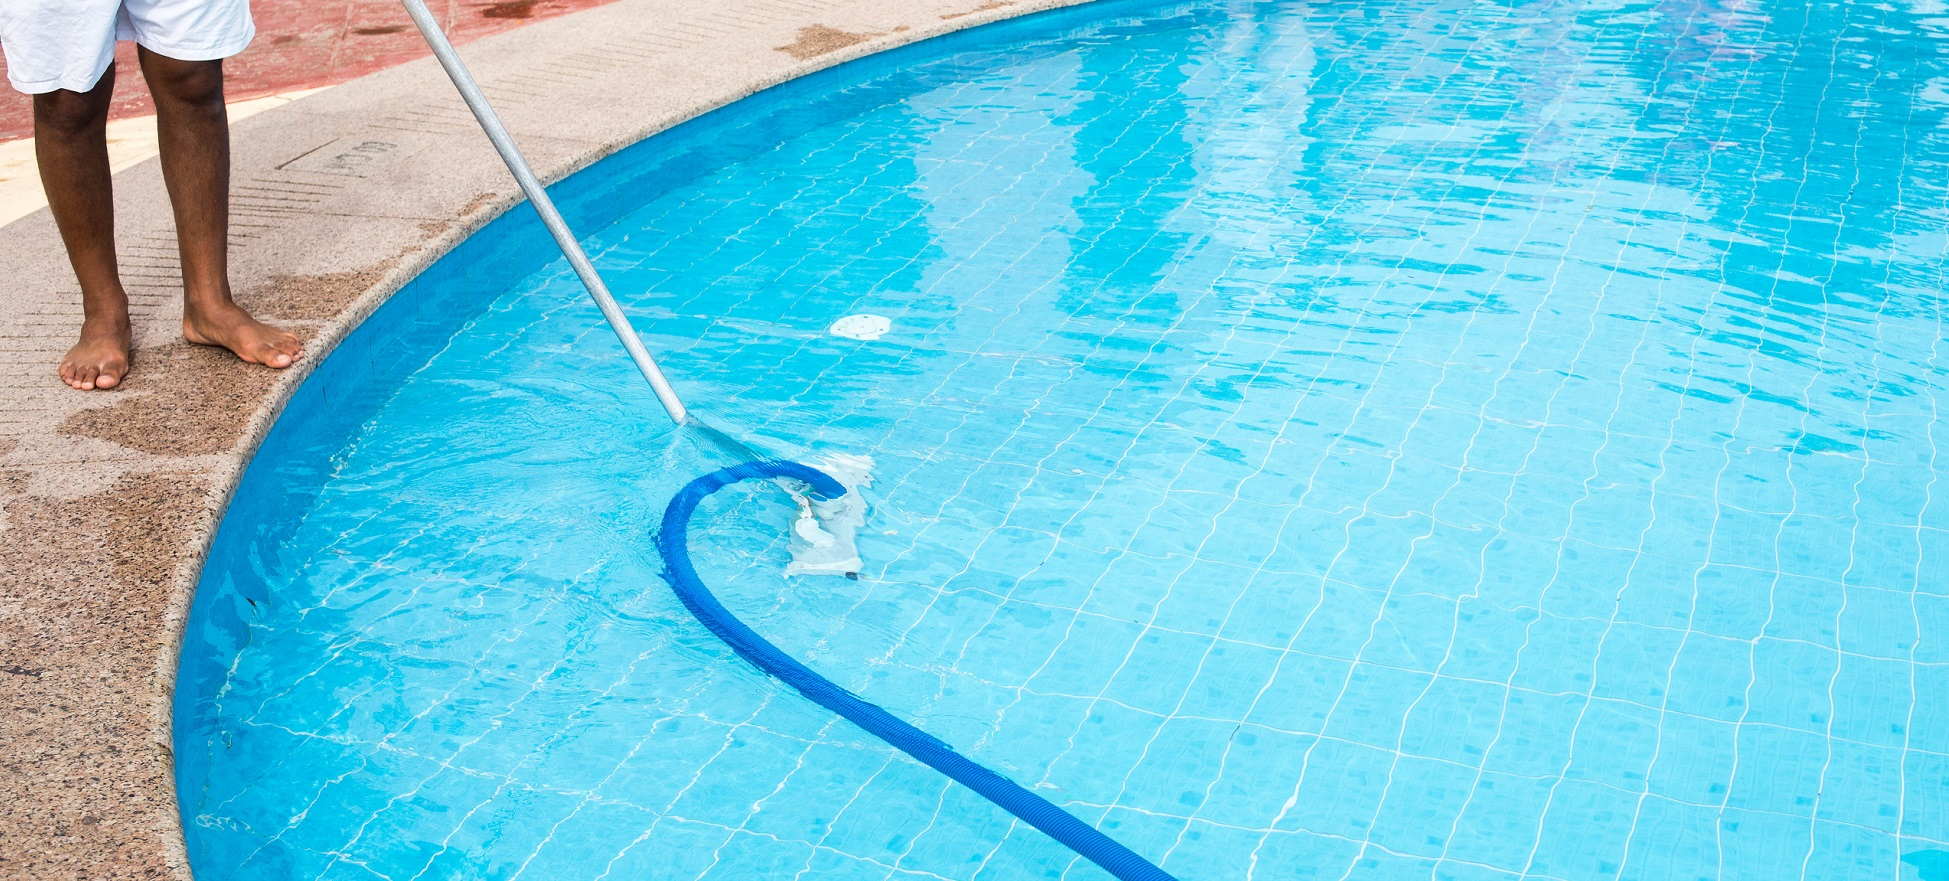 Man cleaning a swimming pool in summer. Cleaner of the swimming pool.